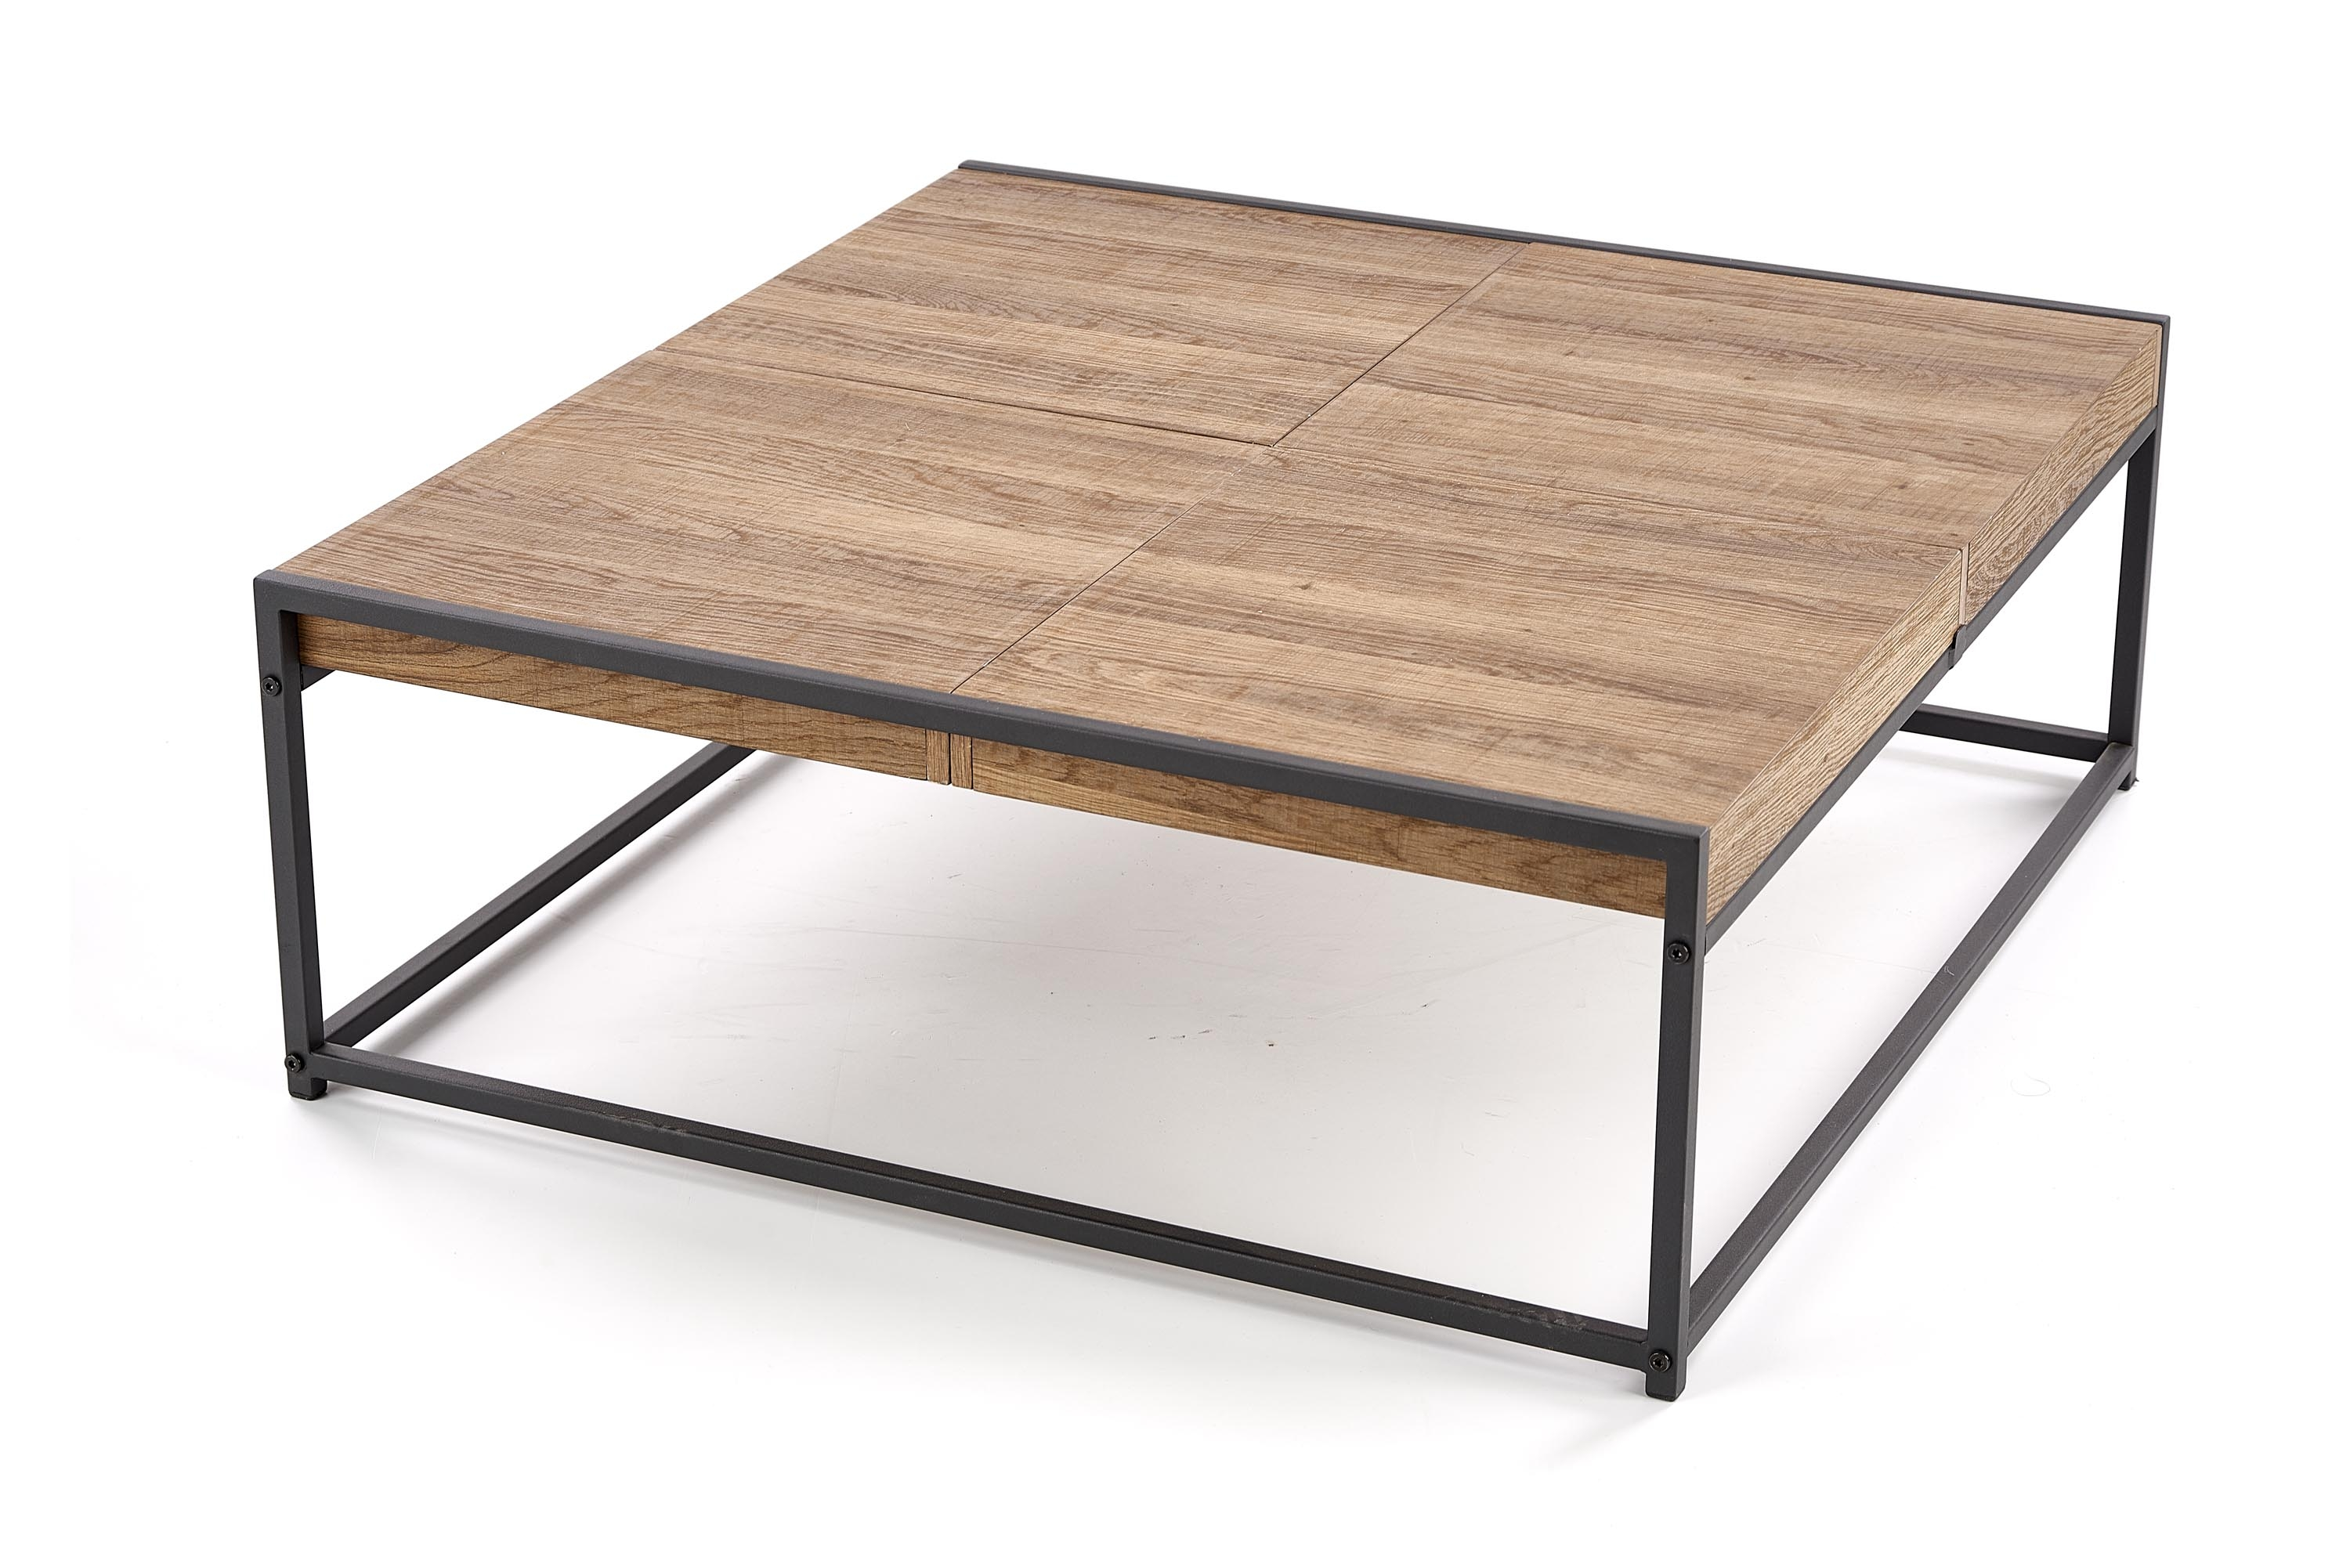 Masa de cafea din MDF si metal Fregata Honey Walnut / Black, L84xl80xH30 cm